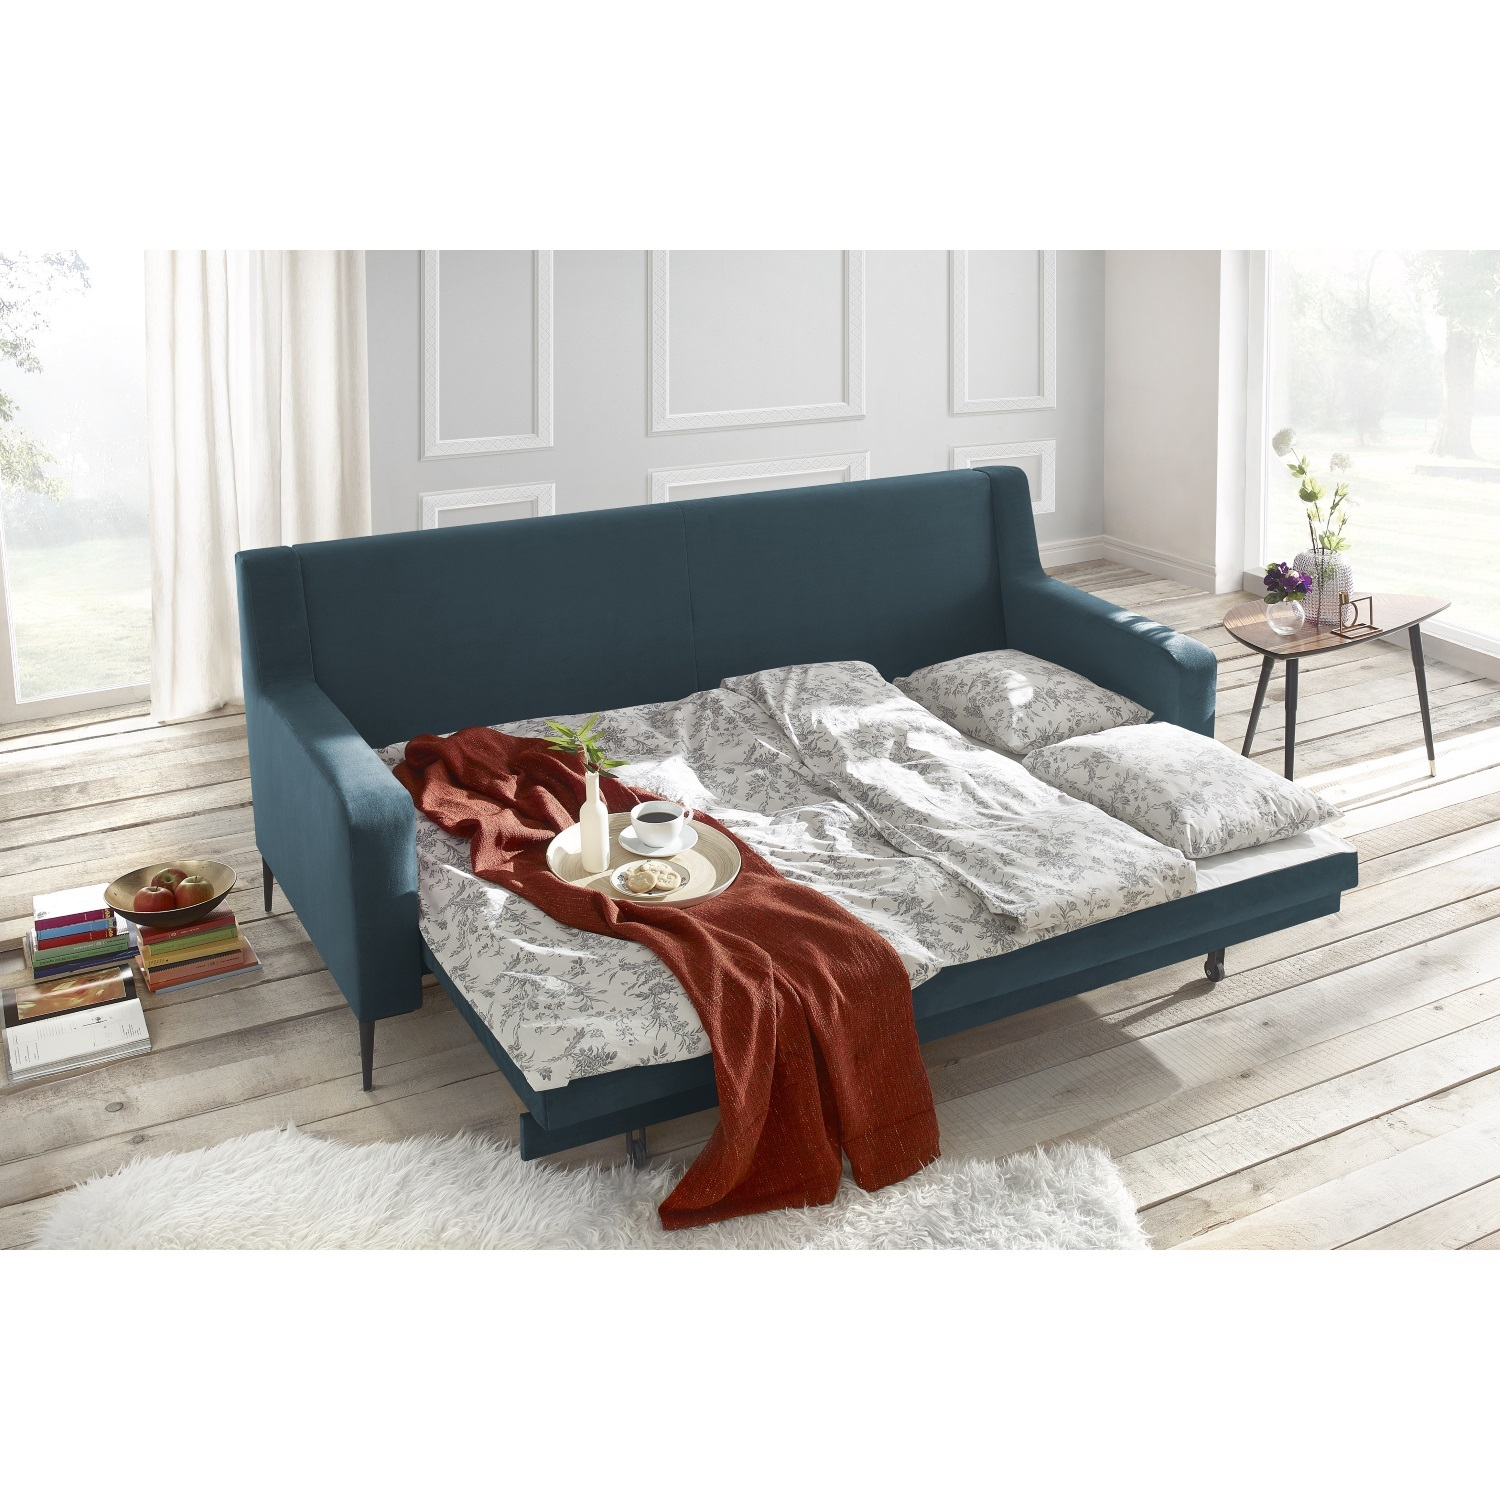 bobochic canap bergen 3 places convertible bleu canard 222cm x 90cm x 92cm achat. Black Bedroom Furniture Sets. Home Design Ideas